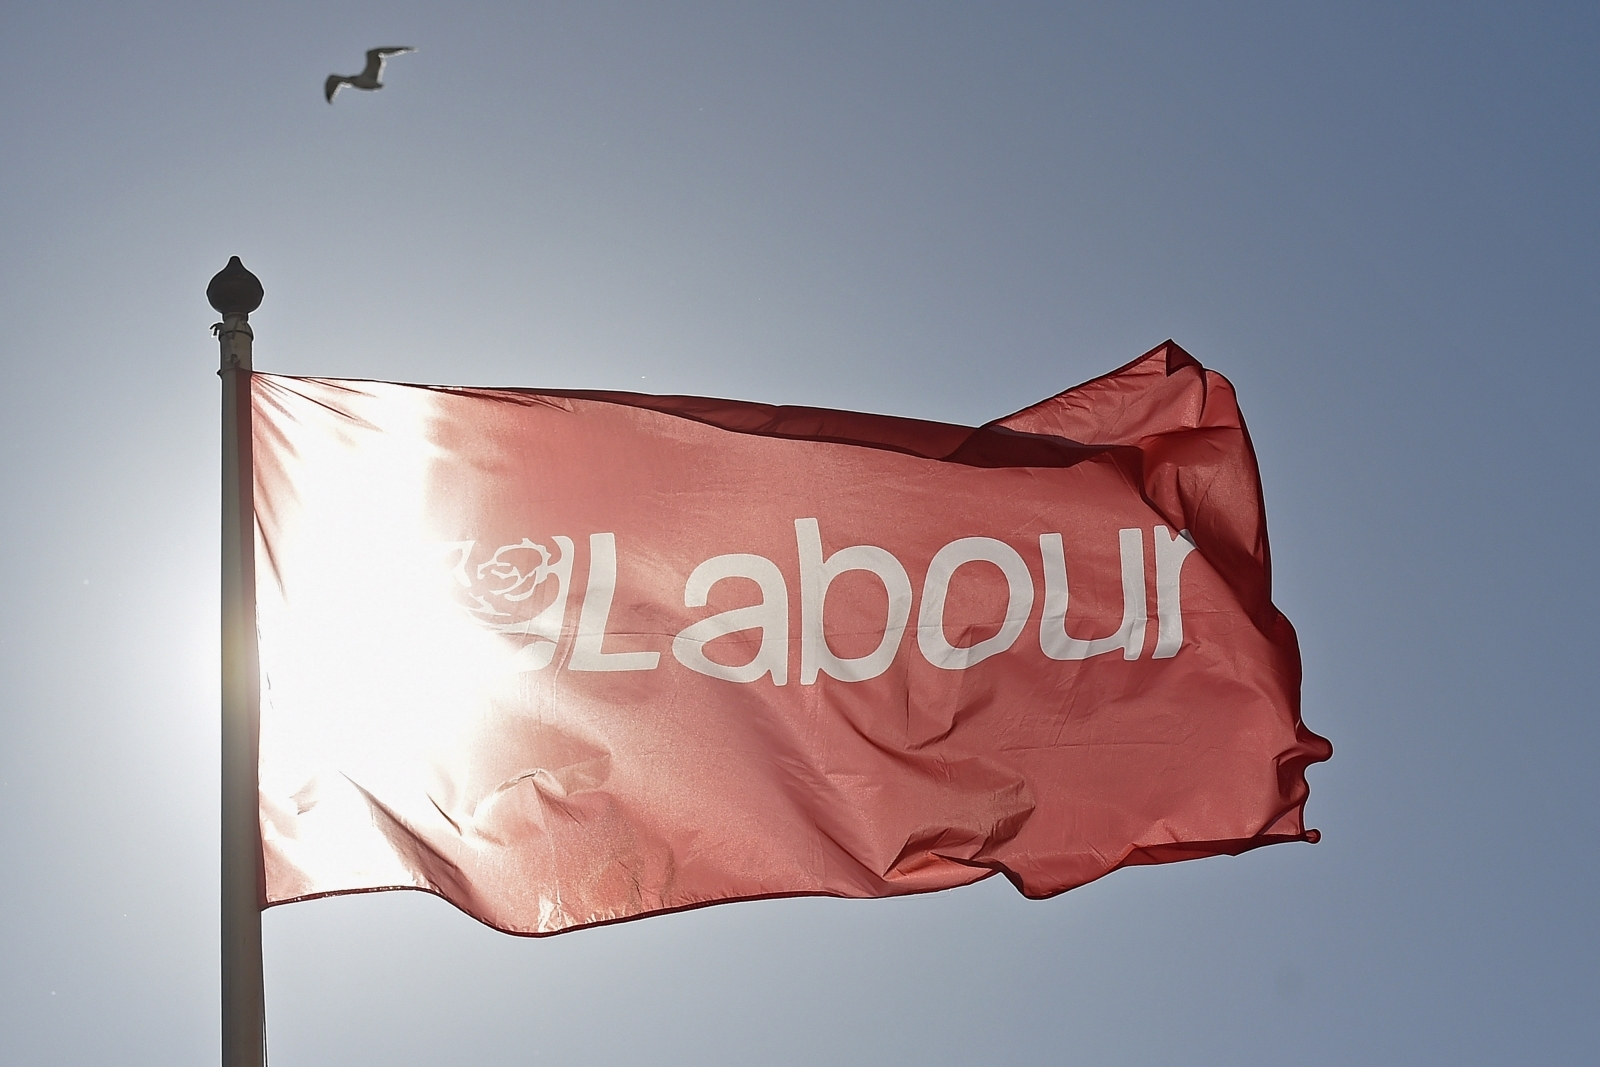 Labour staff member dies suddenly amid inquiry